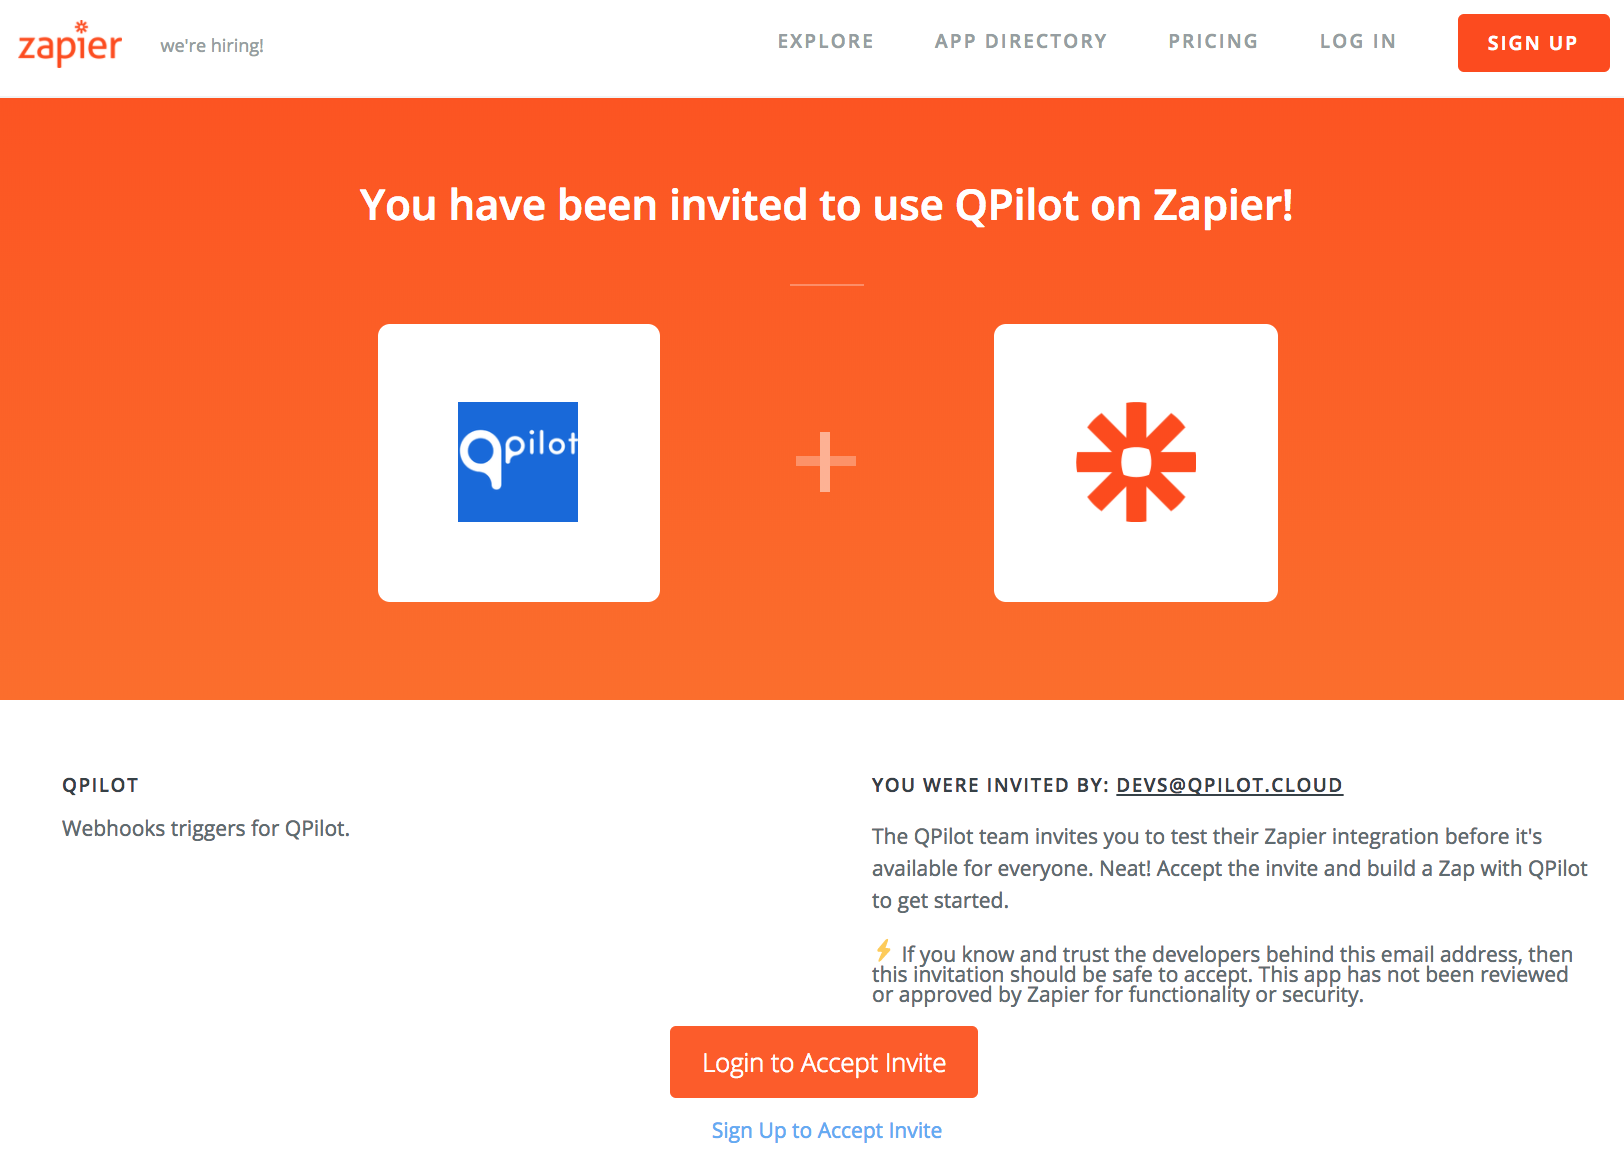 Connect QPilot to Zapier